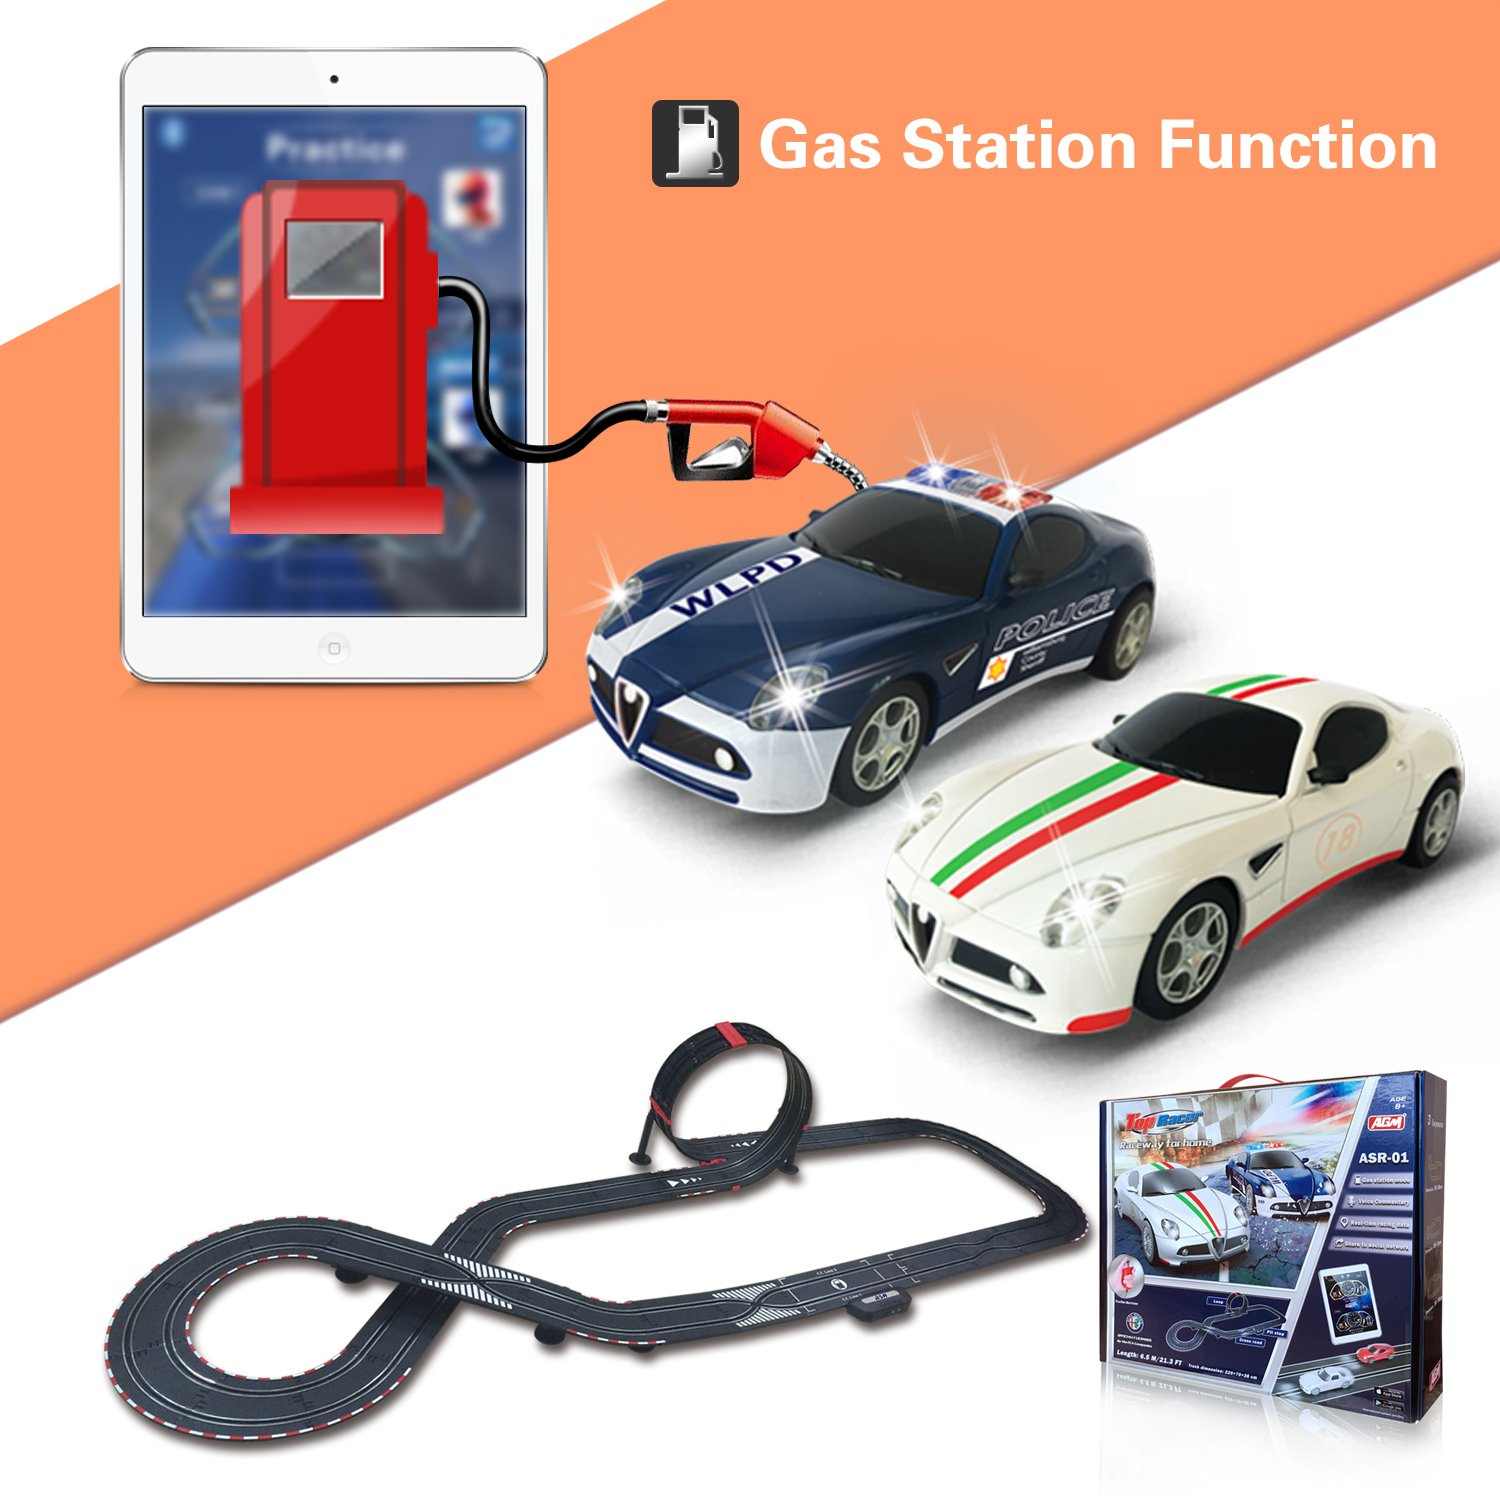 AGM slot car set with racing assistant APP No.ASR-01 1:43 scale by AGM (Image #2)